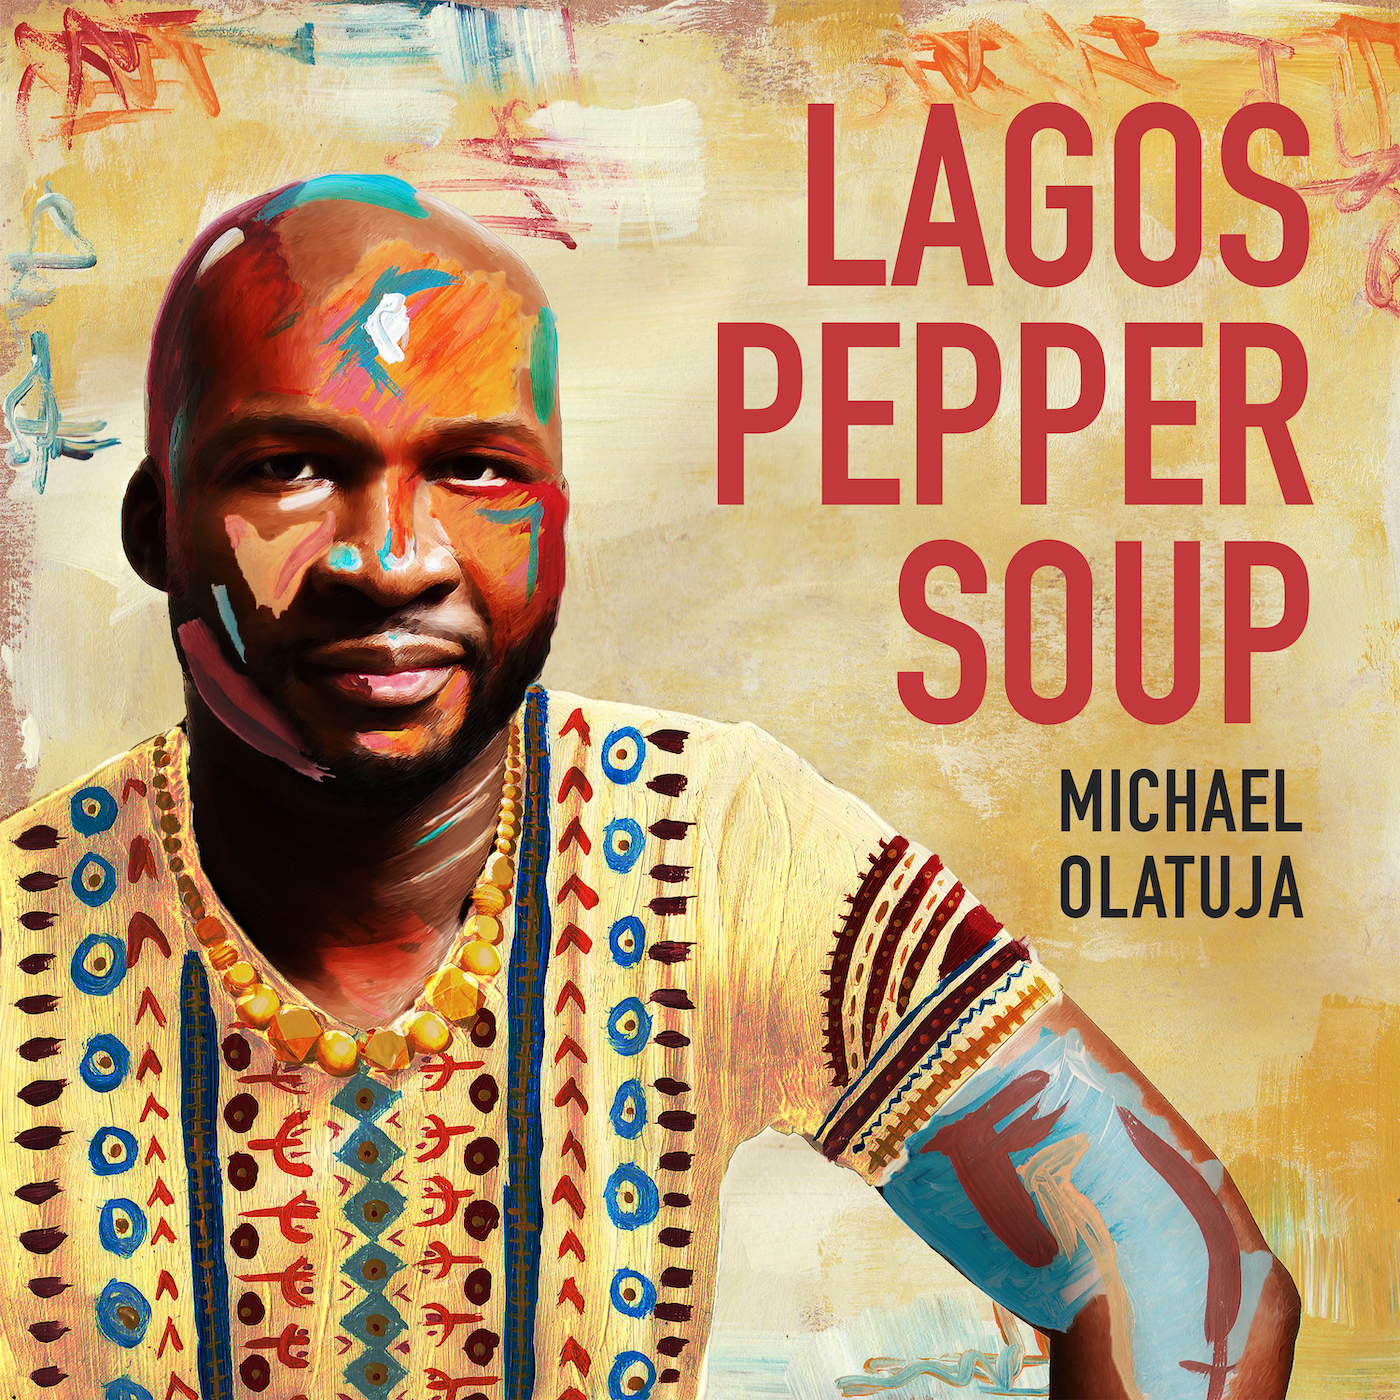 Lagos Pepper Soup Album Cover Pic